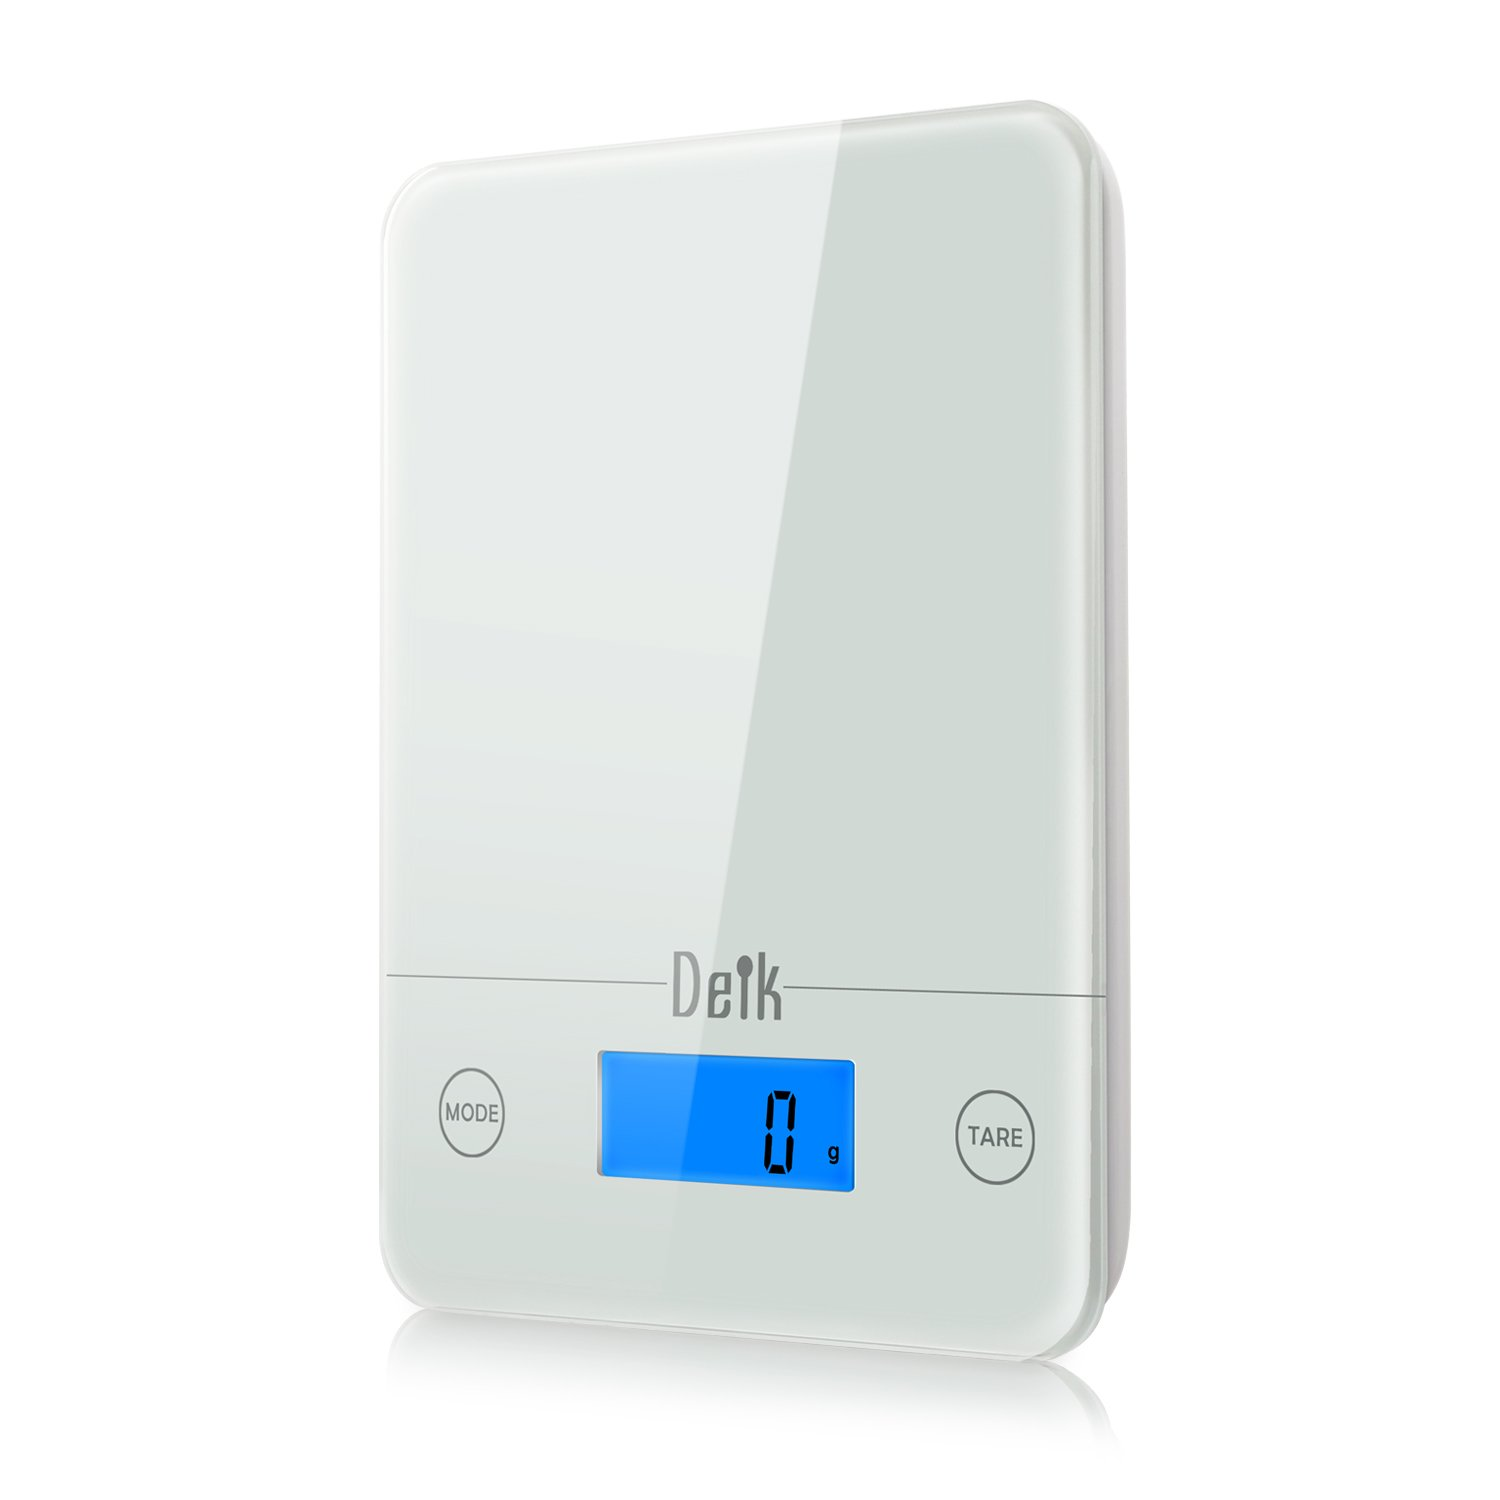 Deik Digital Touch Kitchen And Food Scale (5Kg/11Lb) Tempered Glass In Clean .. 14